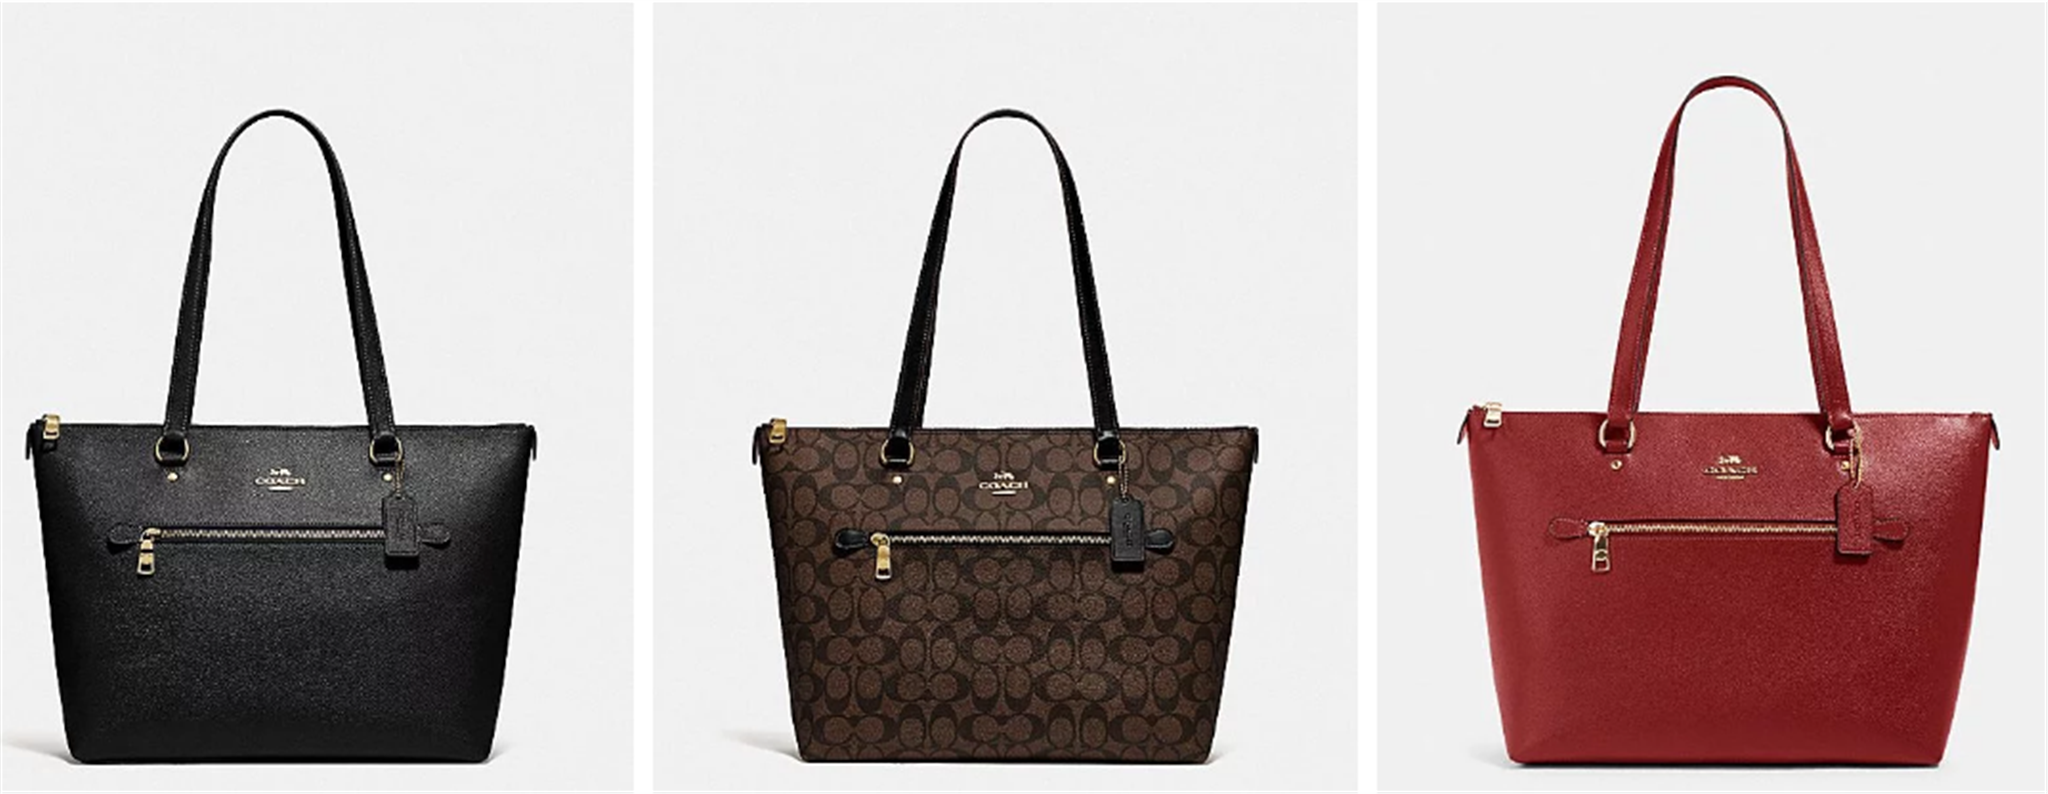 Coach Outlet – Gallery Tote (8 Styles) Only $99.00, Reg $328.00! TODAY ONLY!!!